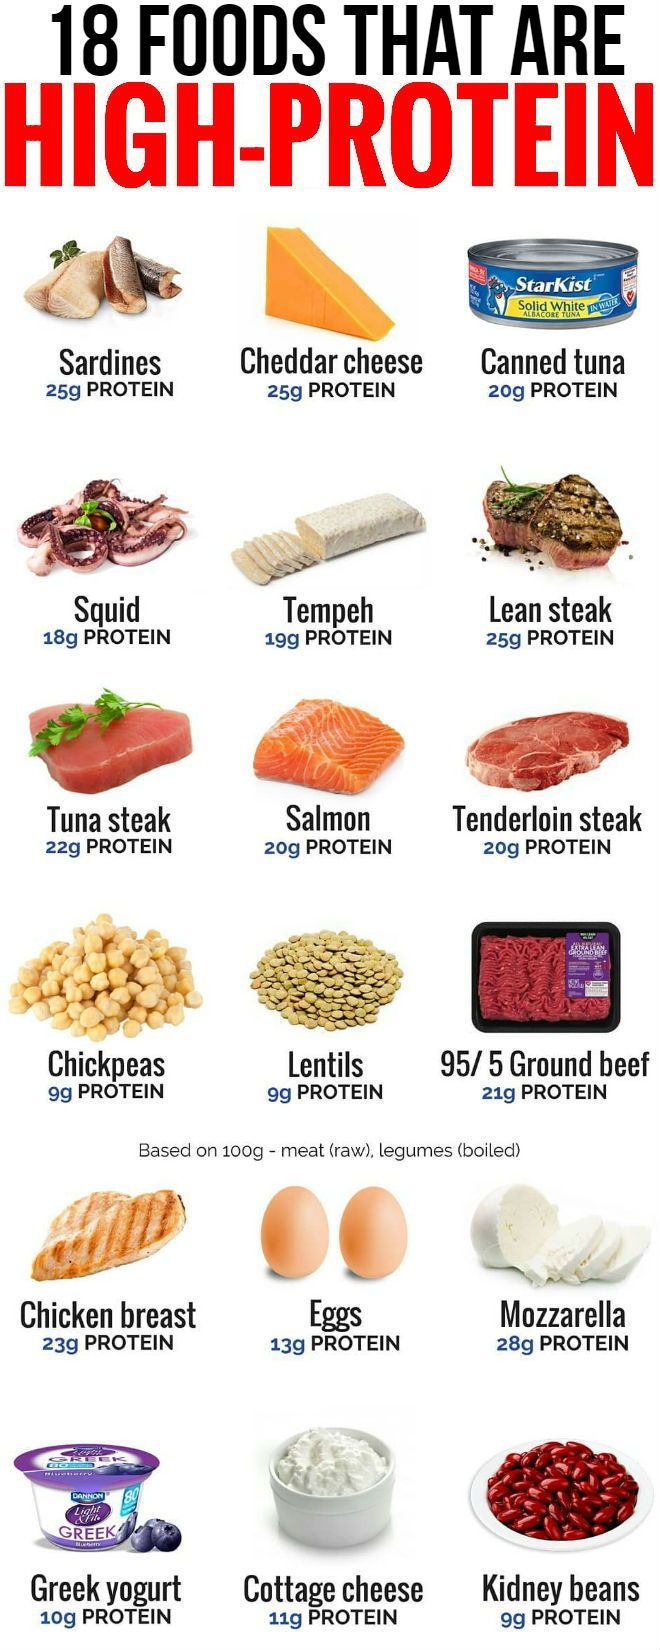 How to Build Muscle On a Budget : Top 7 Cheap Sources of Protein